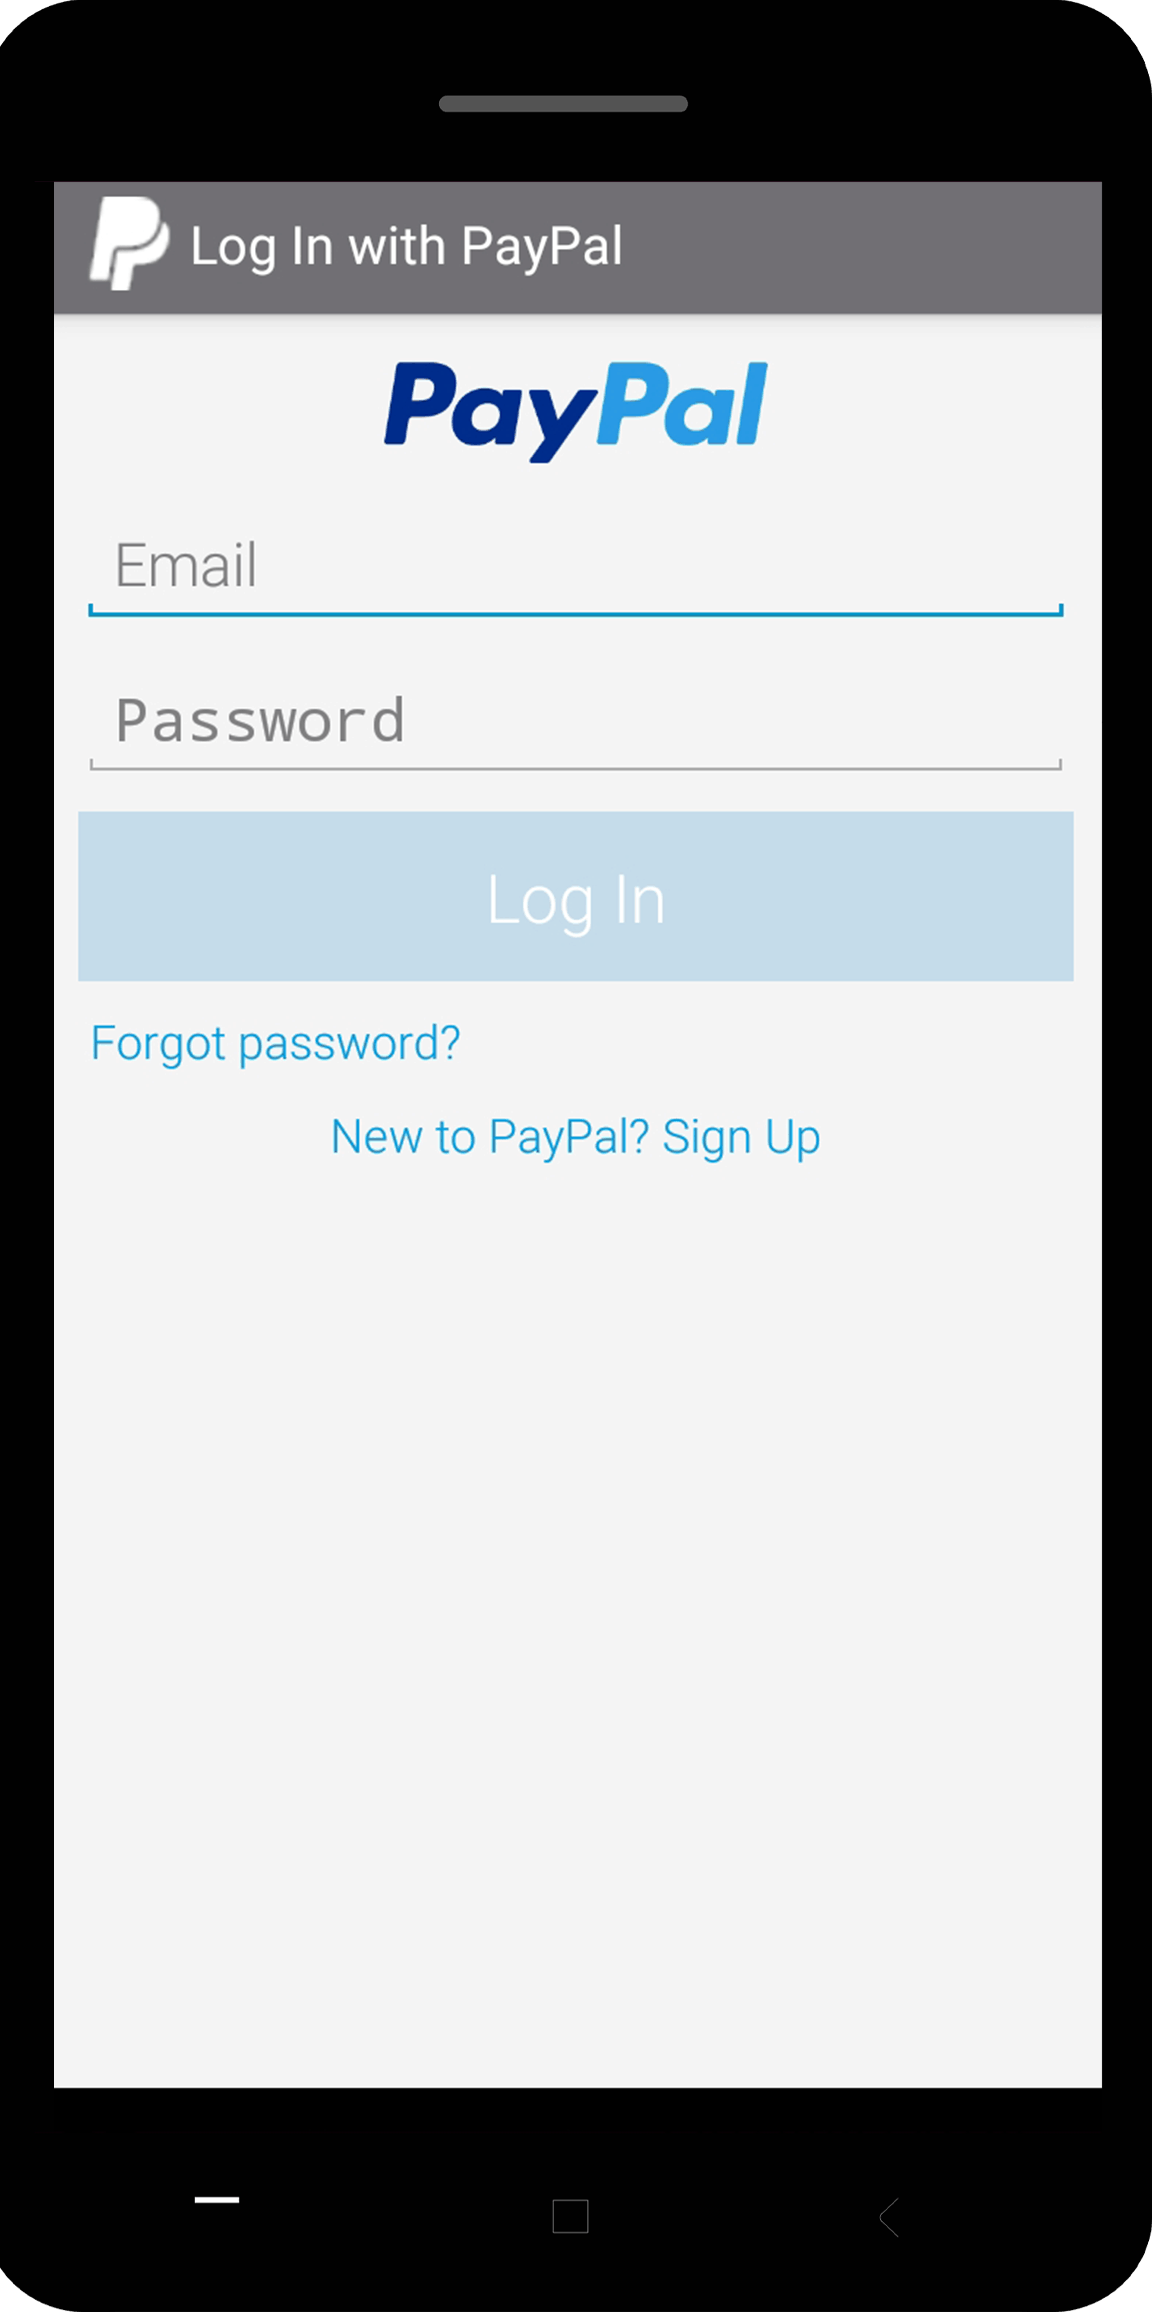 PayPal as a payment method